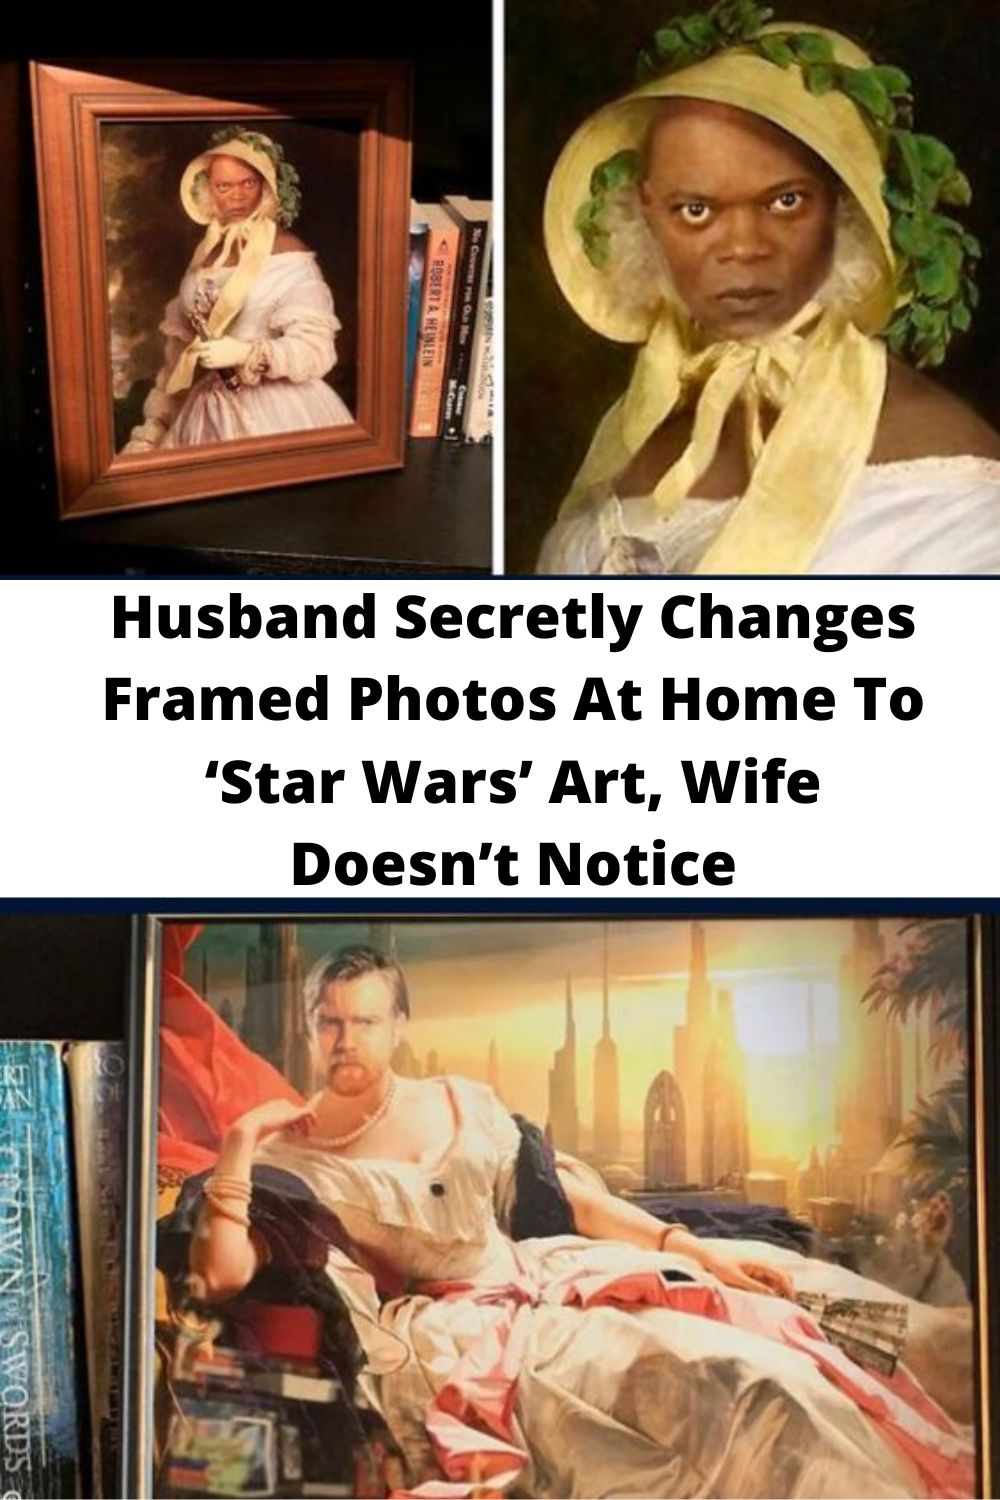 Husband Secretly Changes Framed Photos At Home To 'Star Wars' Art, Wife Doesn't Notice Gallery